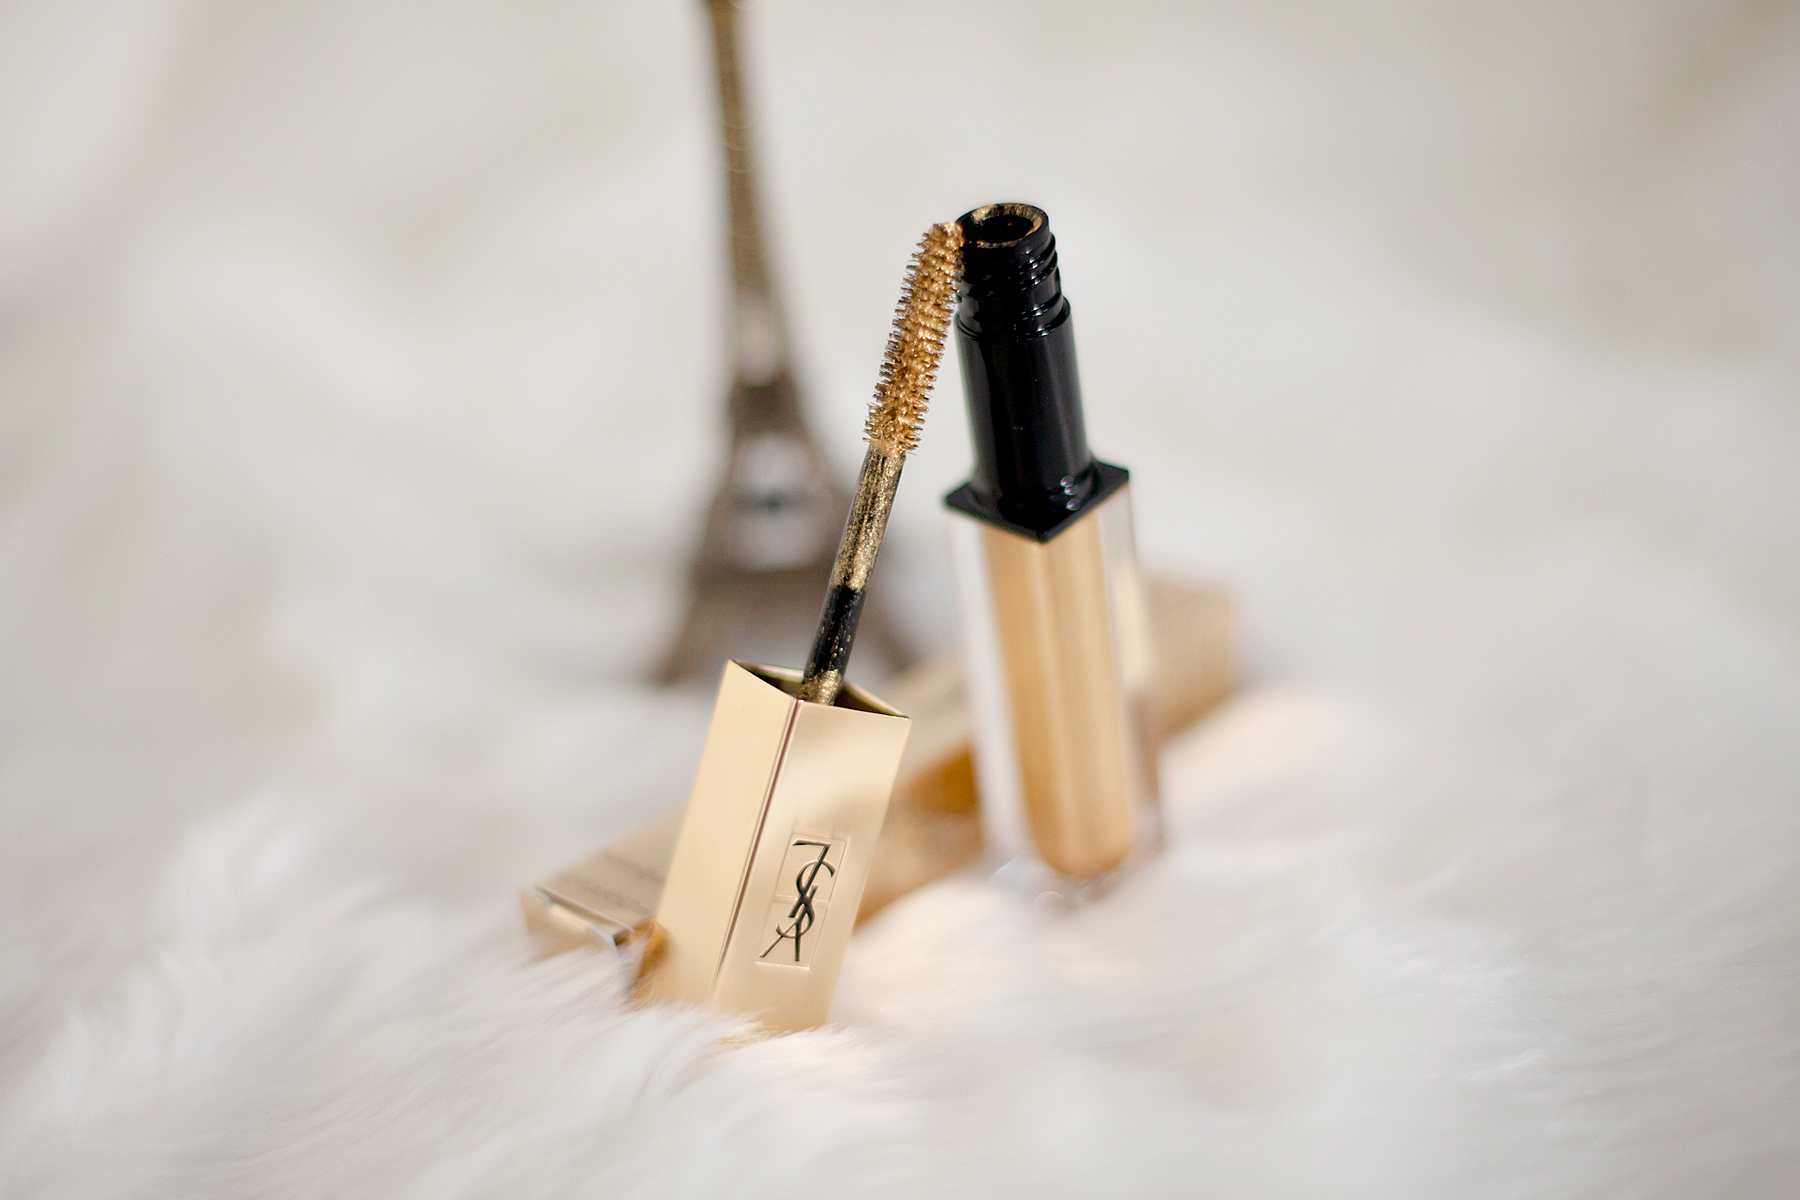 ysl make up golden mascara new in product beauty beautyblogger cats & dogs blog ricarda schernus fashionblogger germany berlin dusseldorf ysl saint laurent paris beauty 1